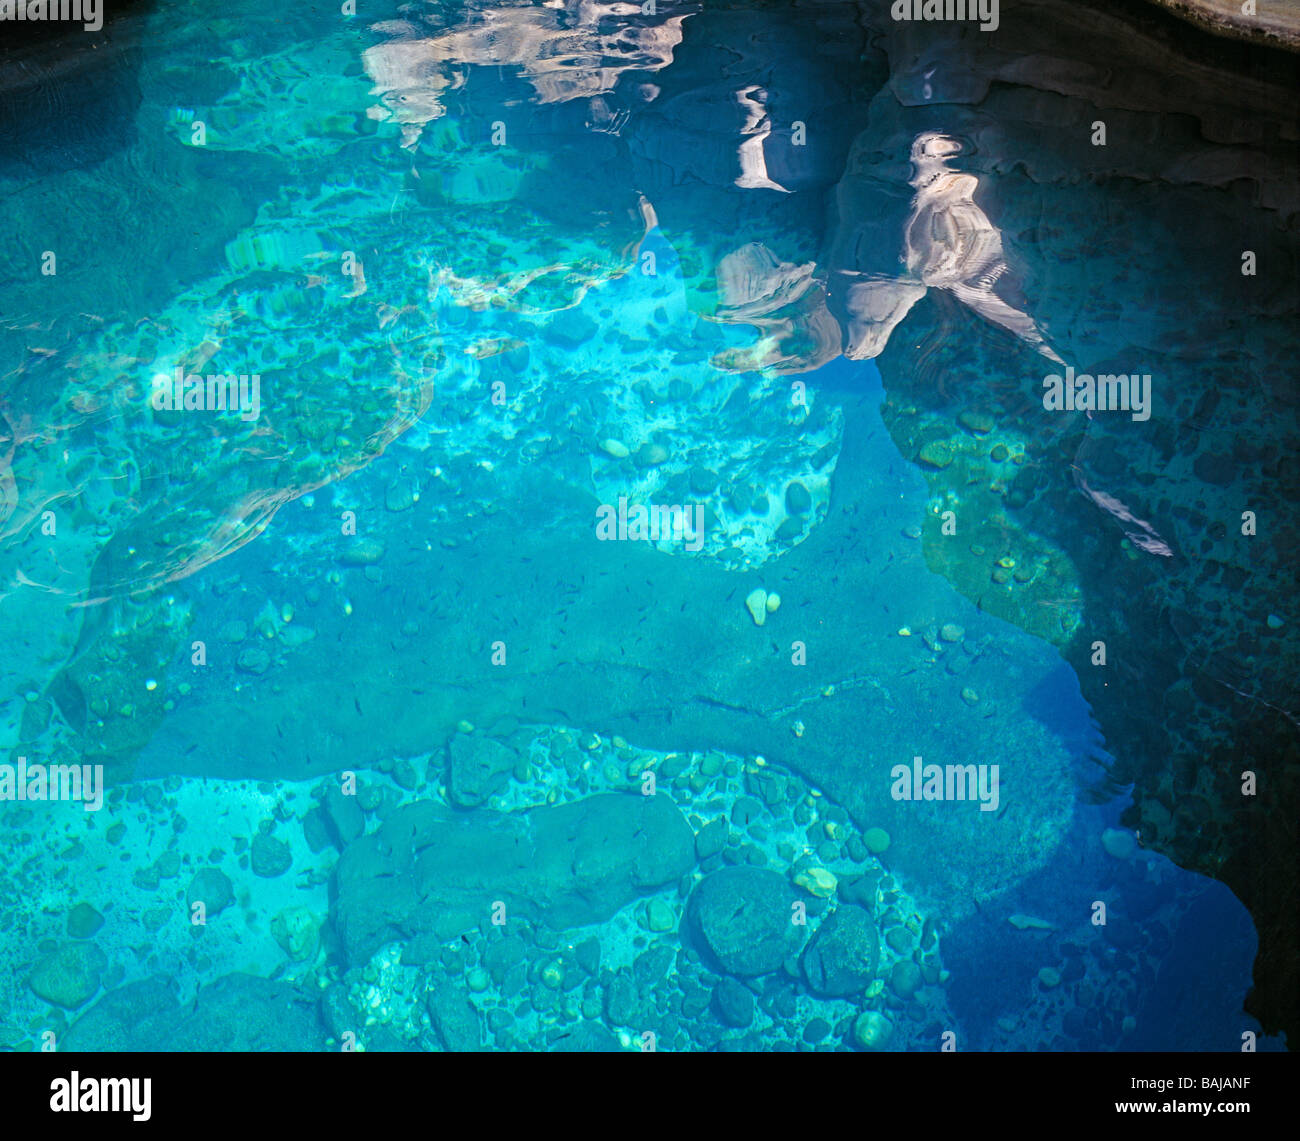 surreal reflections on the water surface of a turquoise coloured waterpool of Wadi Bani Khalid - Stock Image